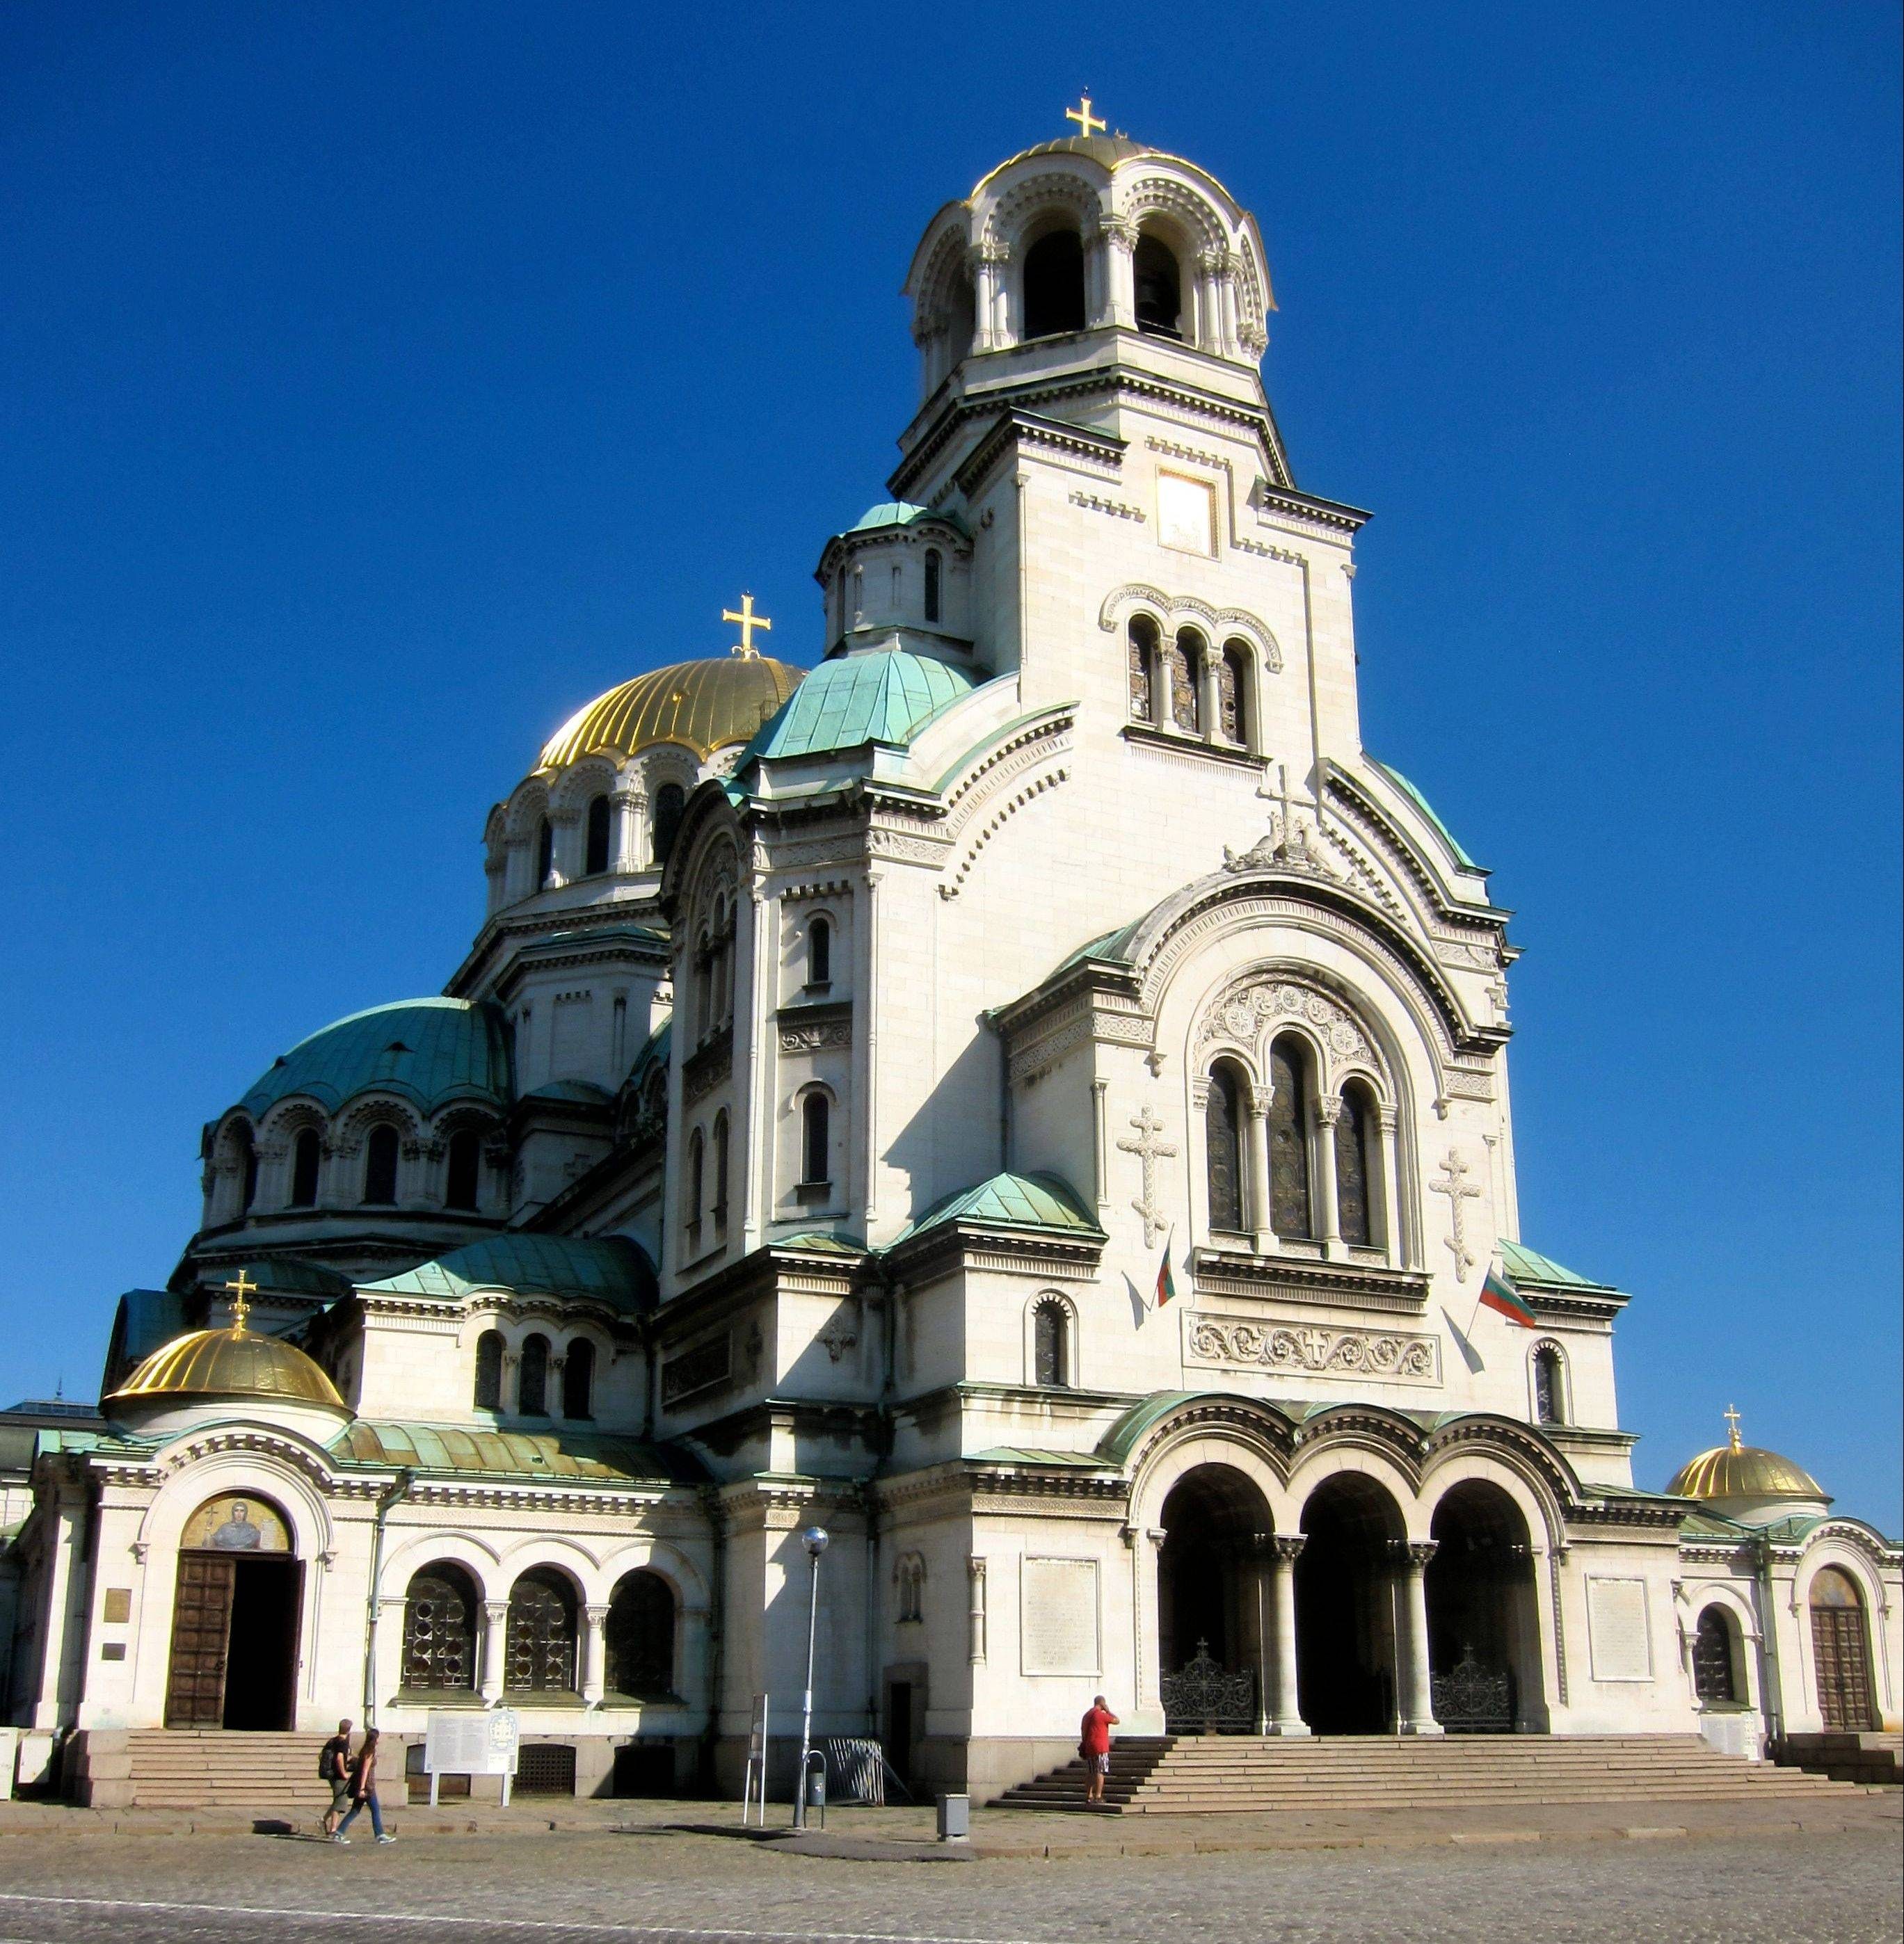 Alexander Nevsky Church in Sofia is one of the city's most recognizable landmarks.